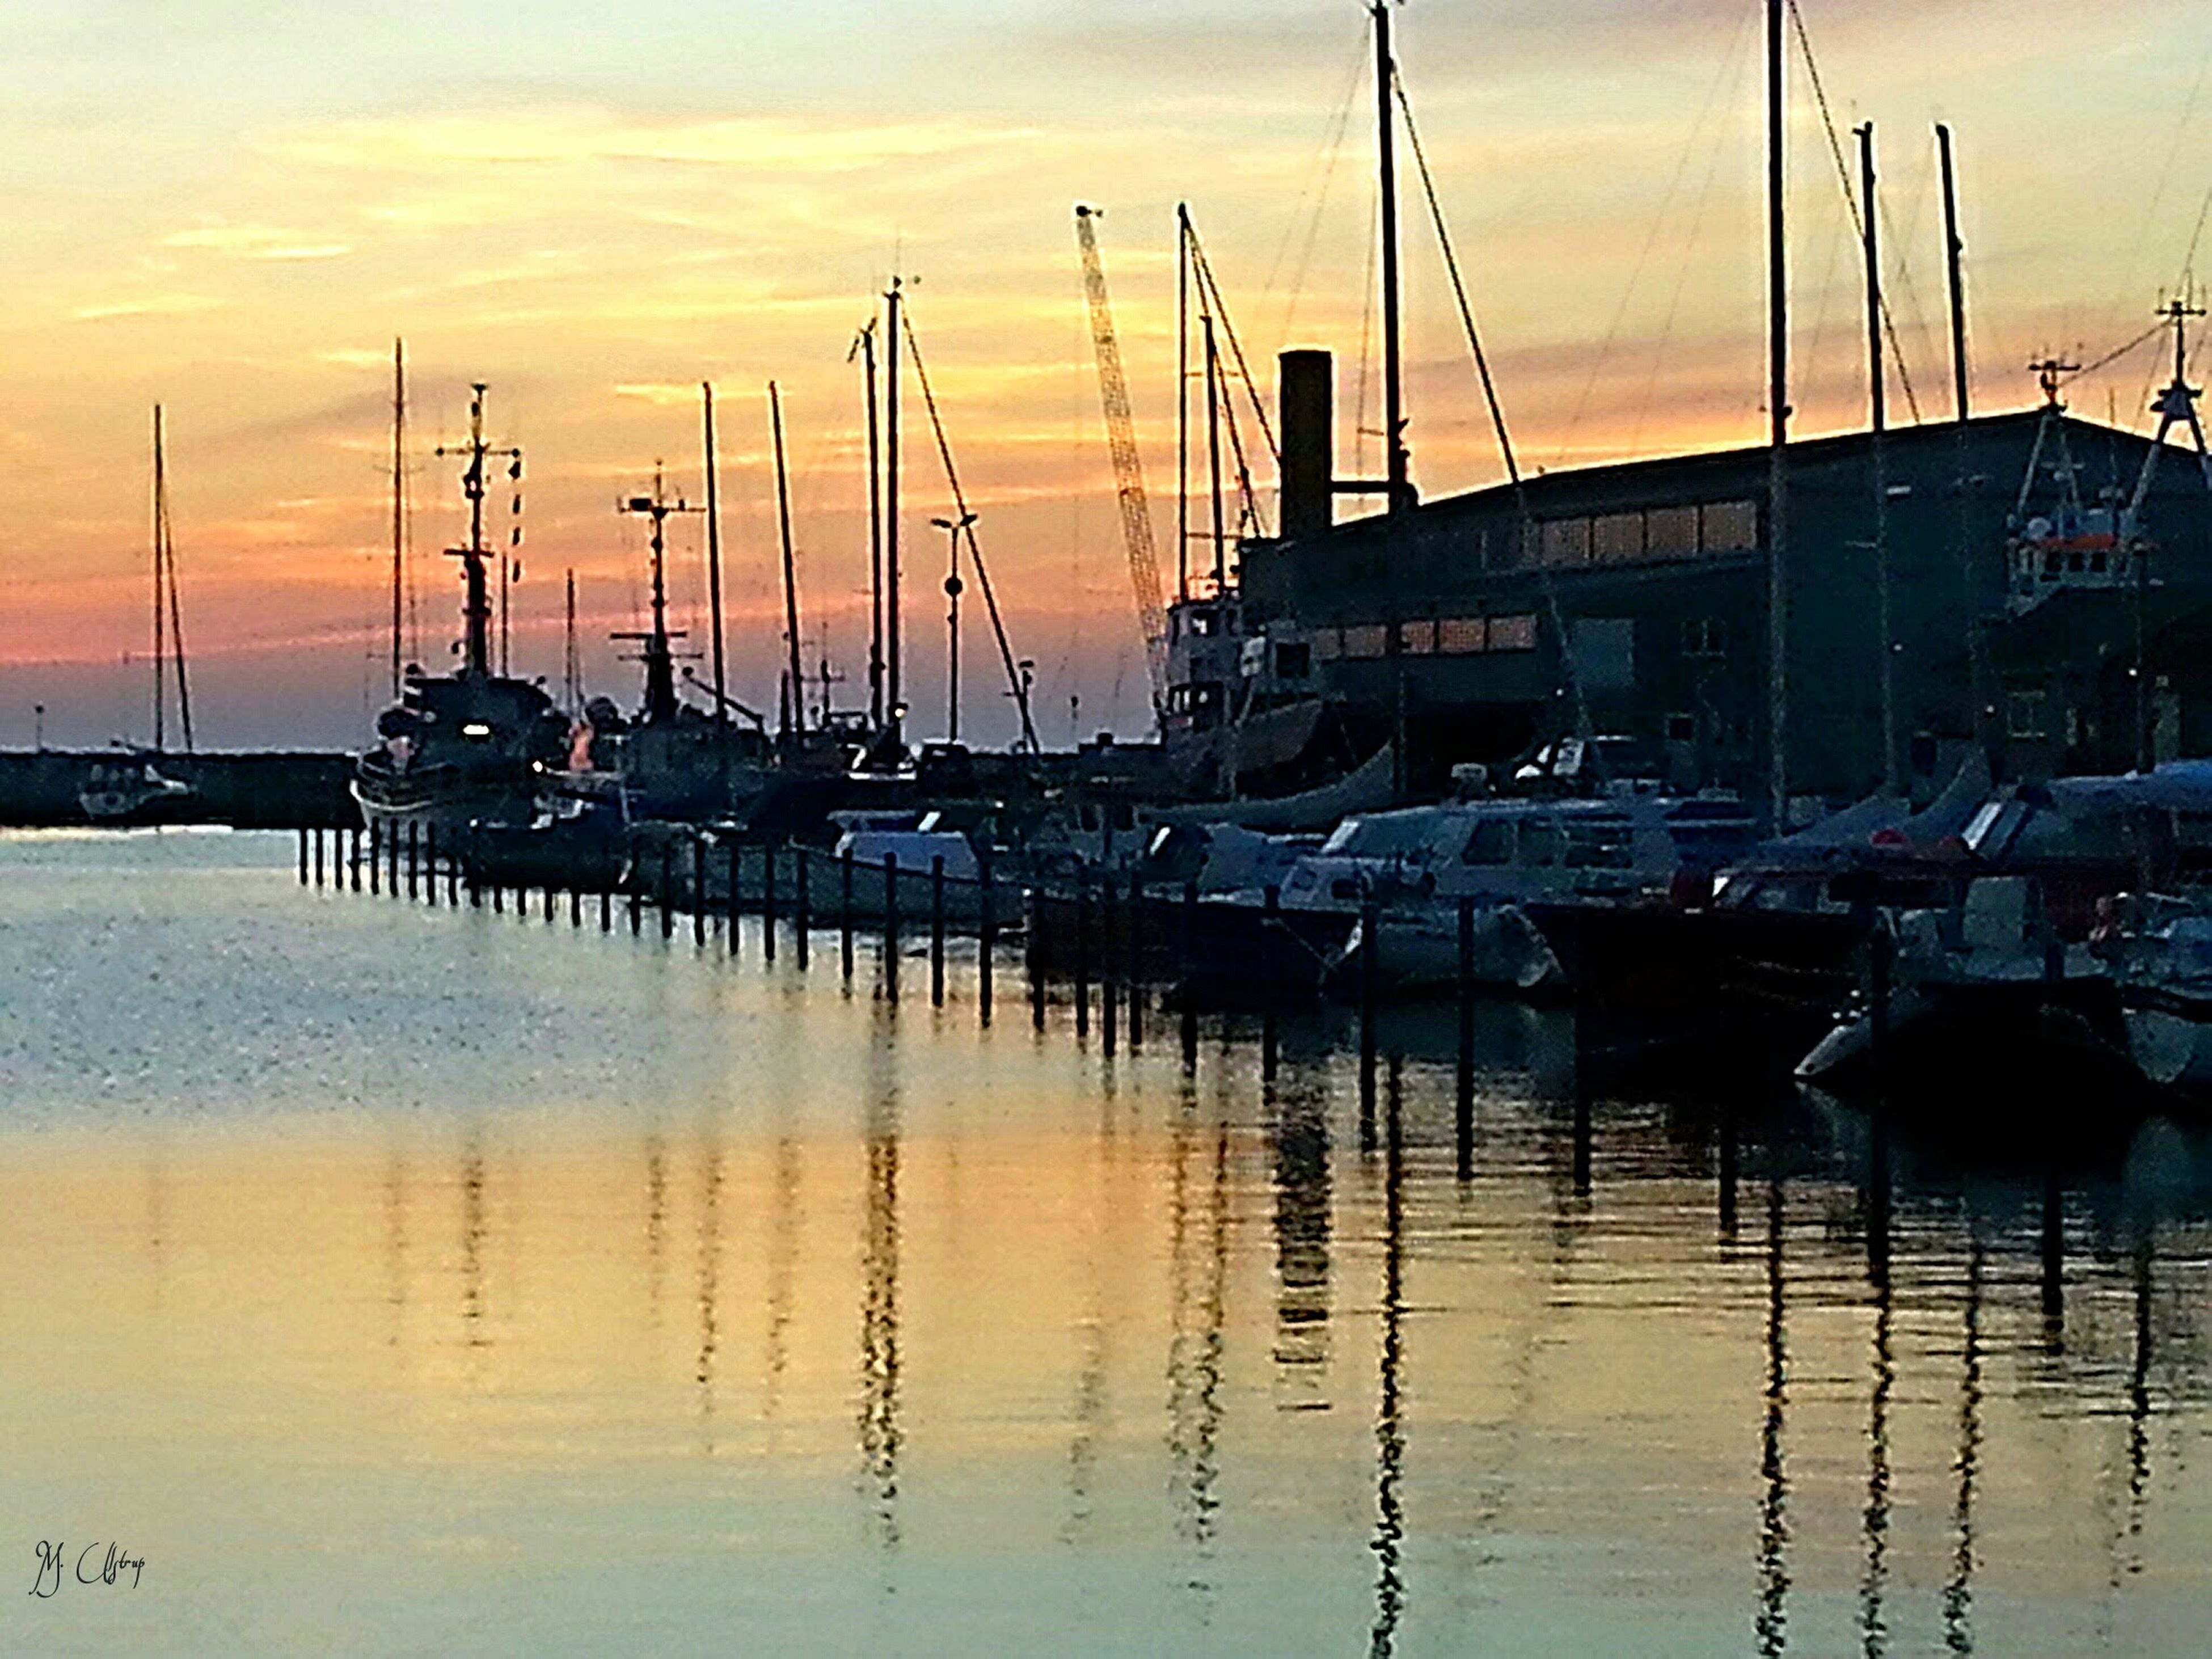 nautical vessel, transportation, sunset, moored, mode of transport, boat, water, harbor, mast, waterfront, sky, sea, sailboat, reflection, orange color, marina, commercial dock, cloud - sky, built structure, crane - construction machinery